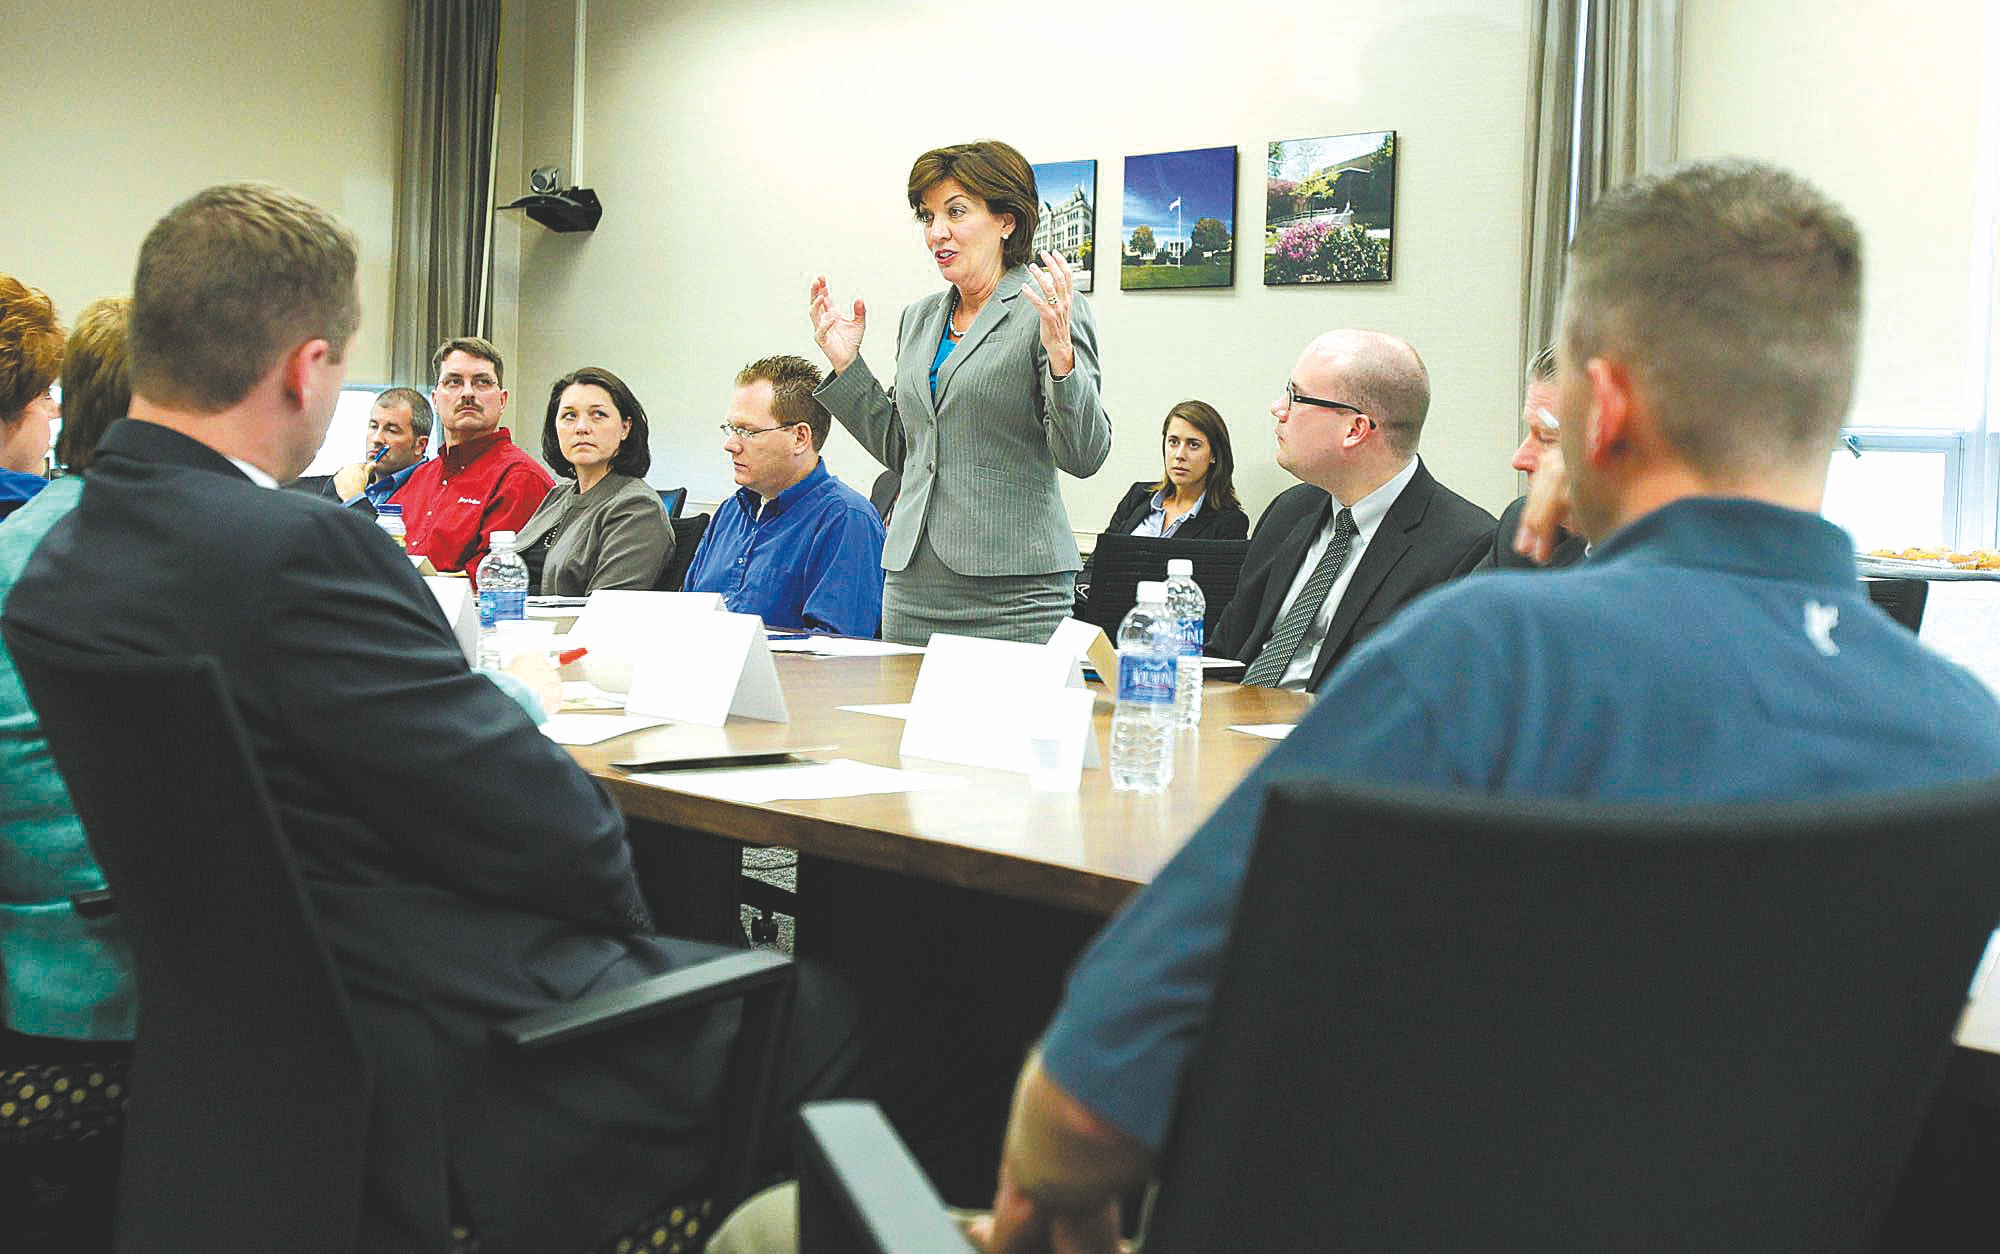 U.S. Rep. Kathleen C. Hochul  speaks to business leaders about the need for skilled workers Tuesday during a round-table discussion at Erie Community College's Amherst campus.